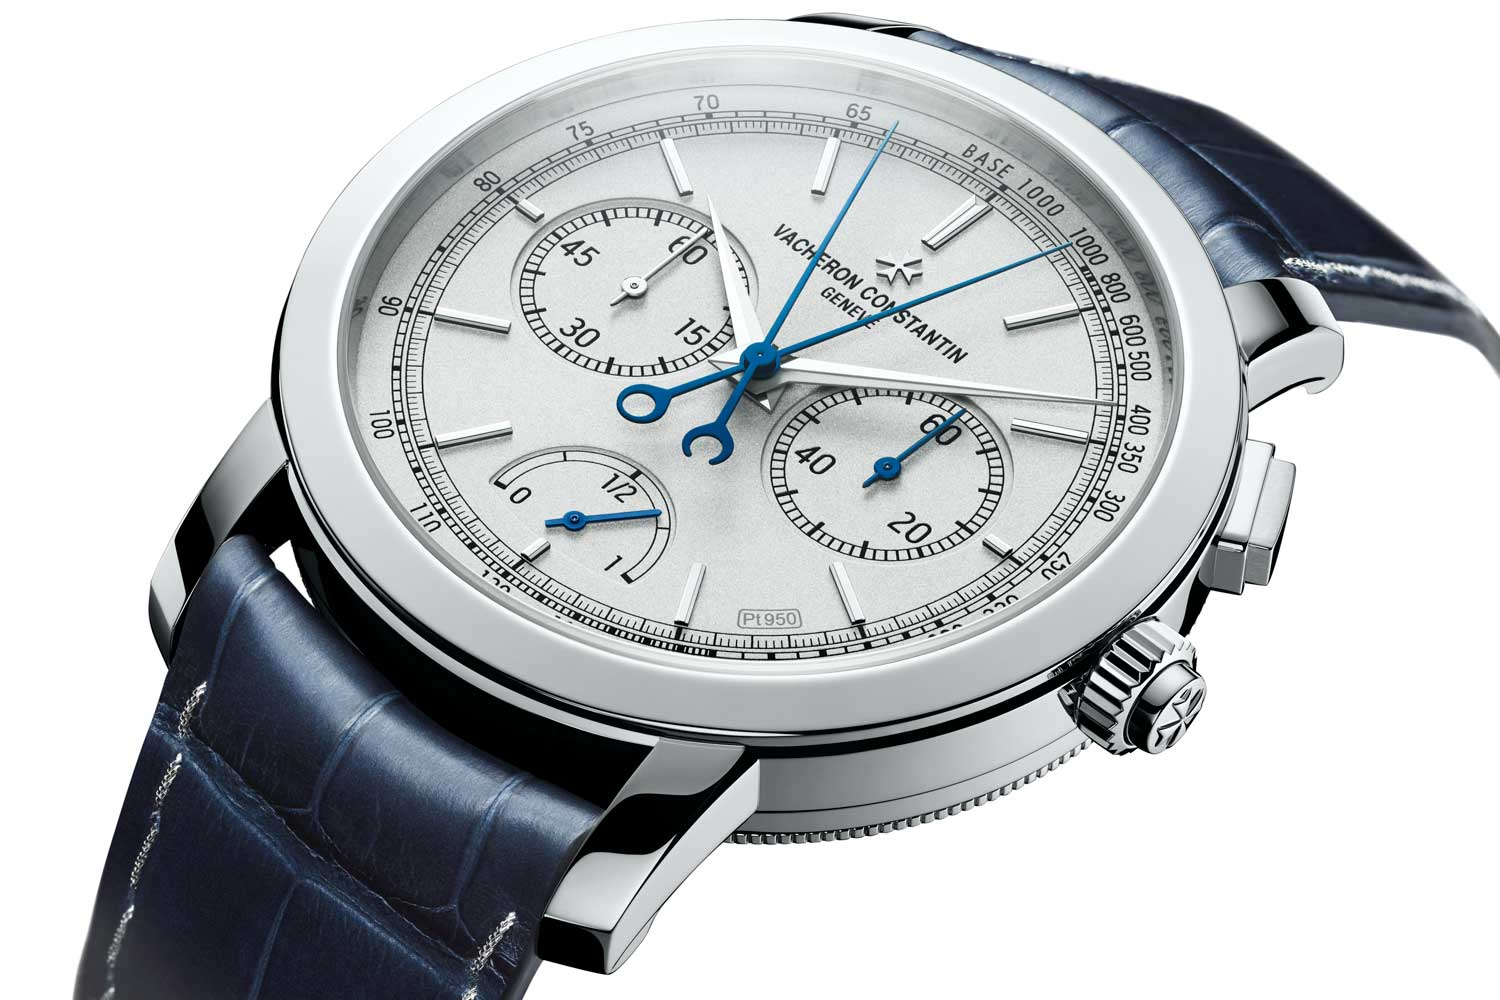 The use of a 60-minute chronograph counter at three o'clock creates a nice sense of symmetry relative to the seconds counter at nine o'clock.